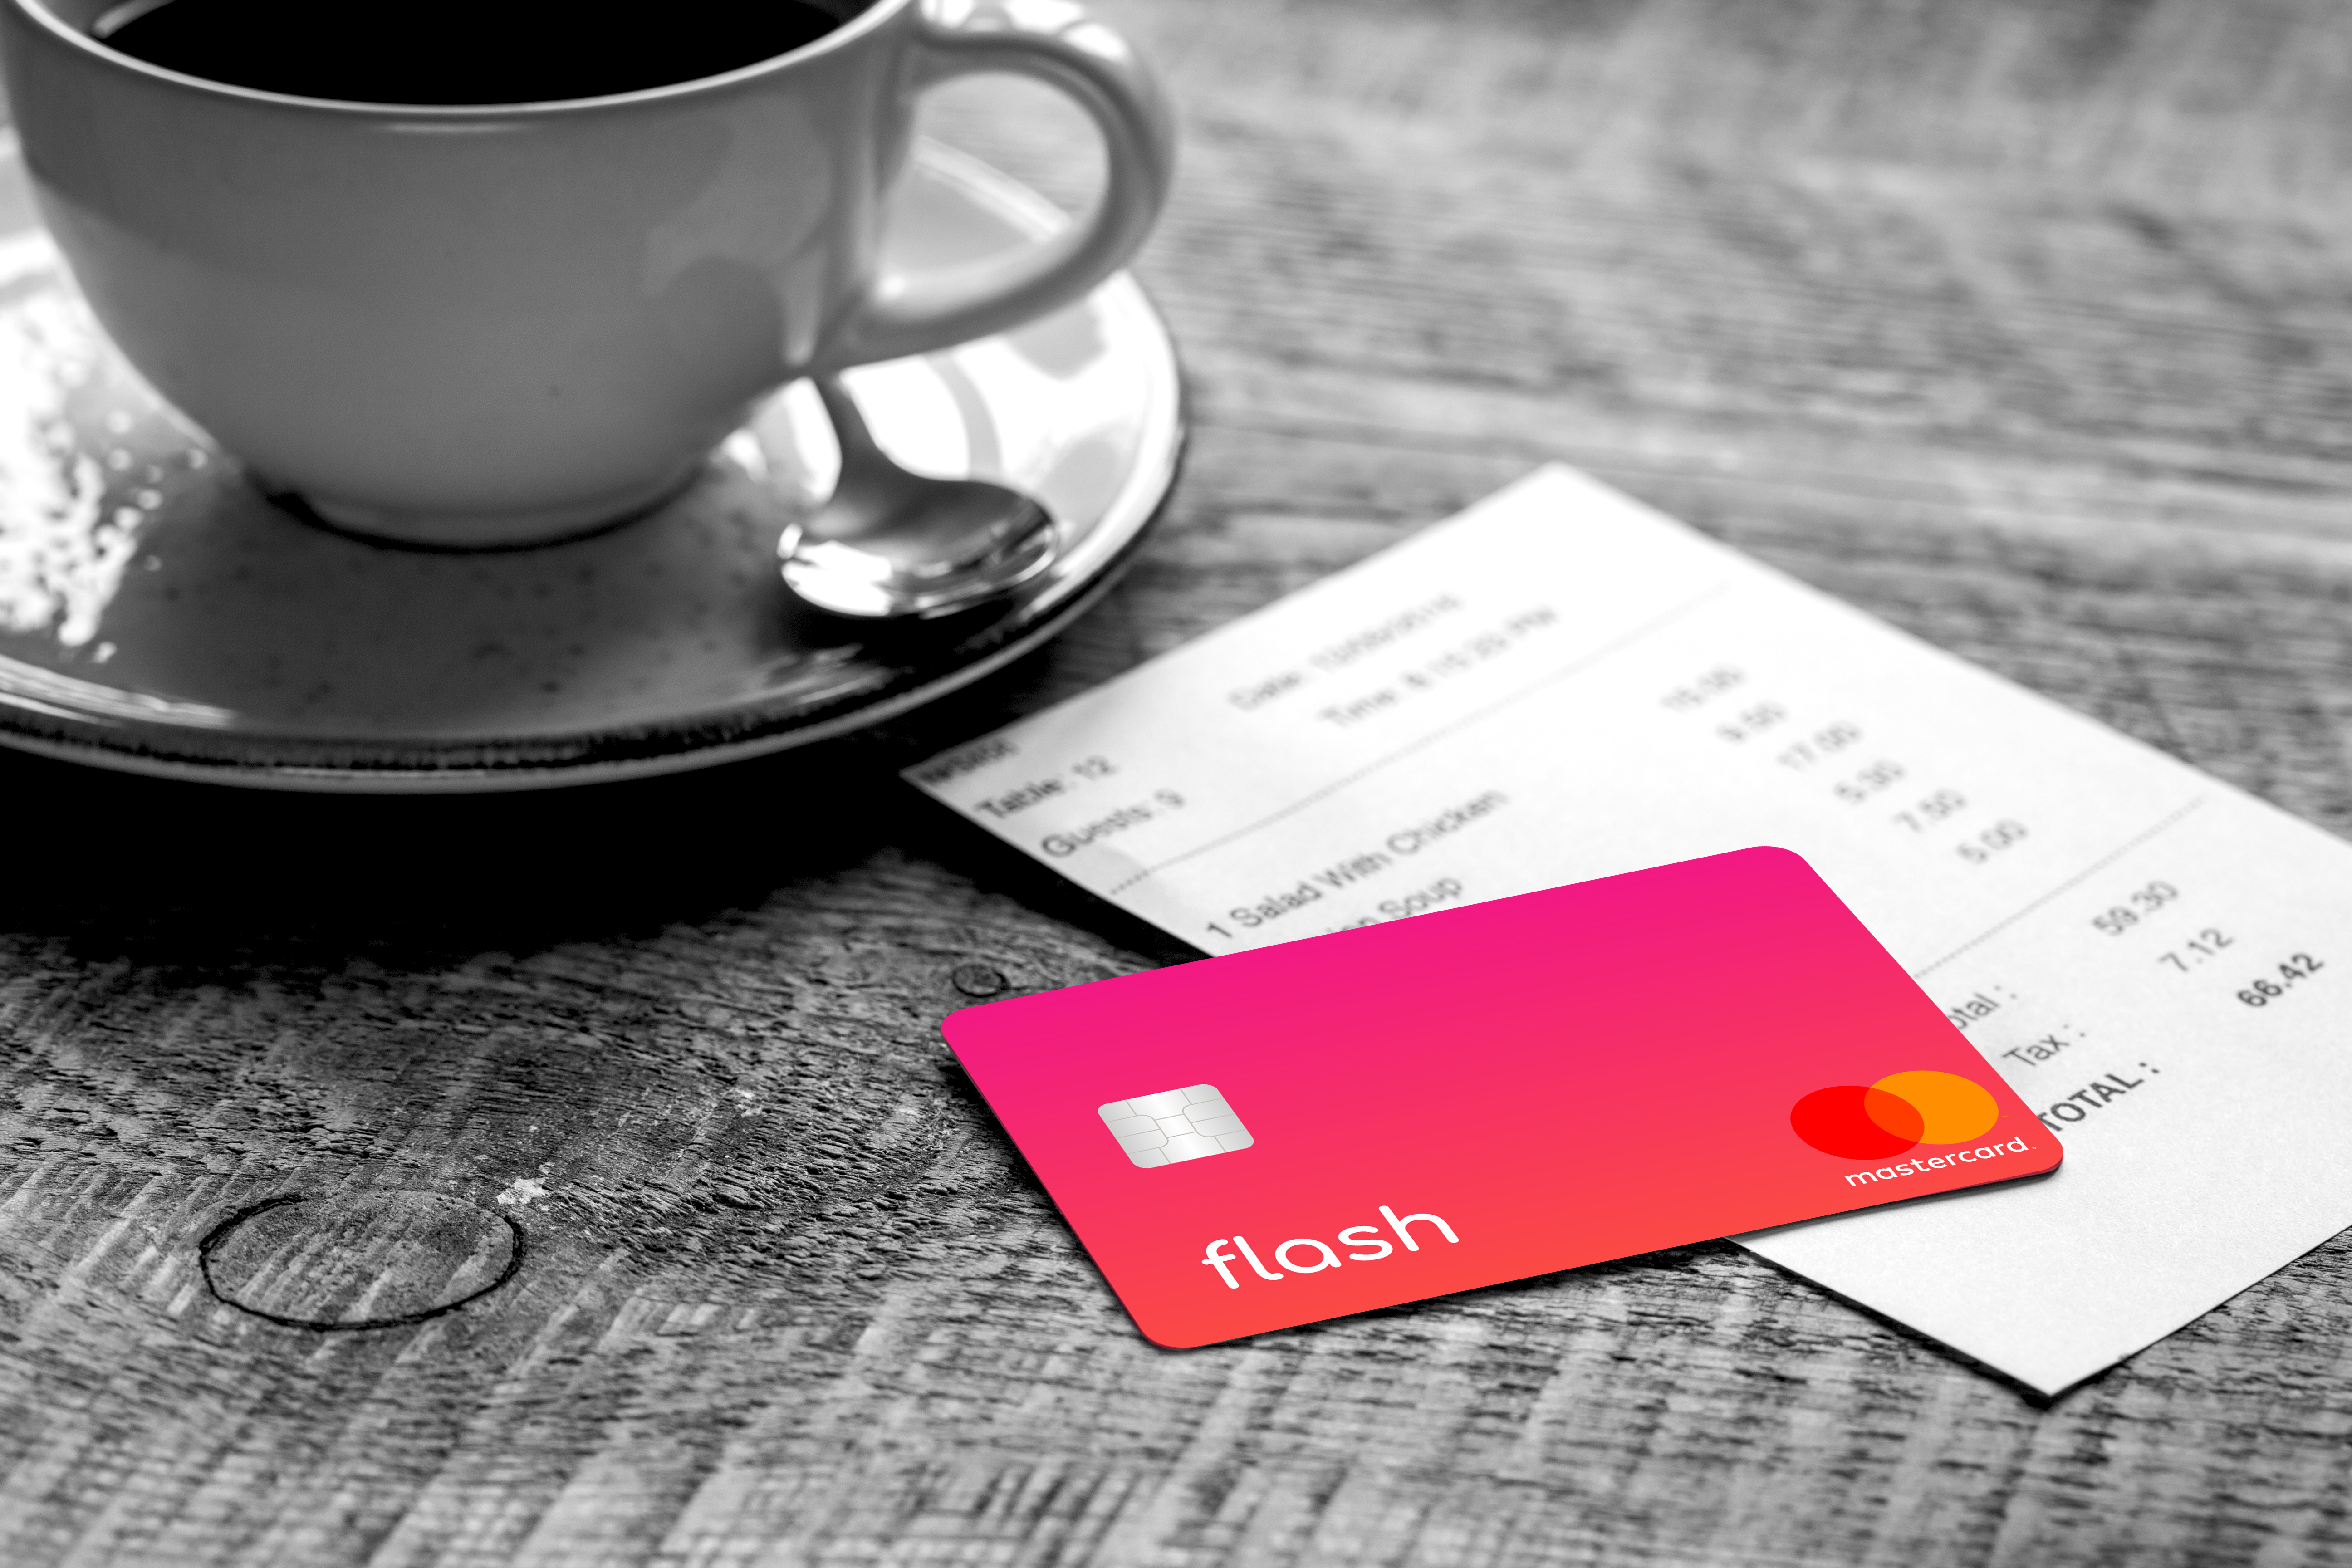 Brazilian HR startup Flash raises $22M in a Tiger Global-led Series B round of funding